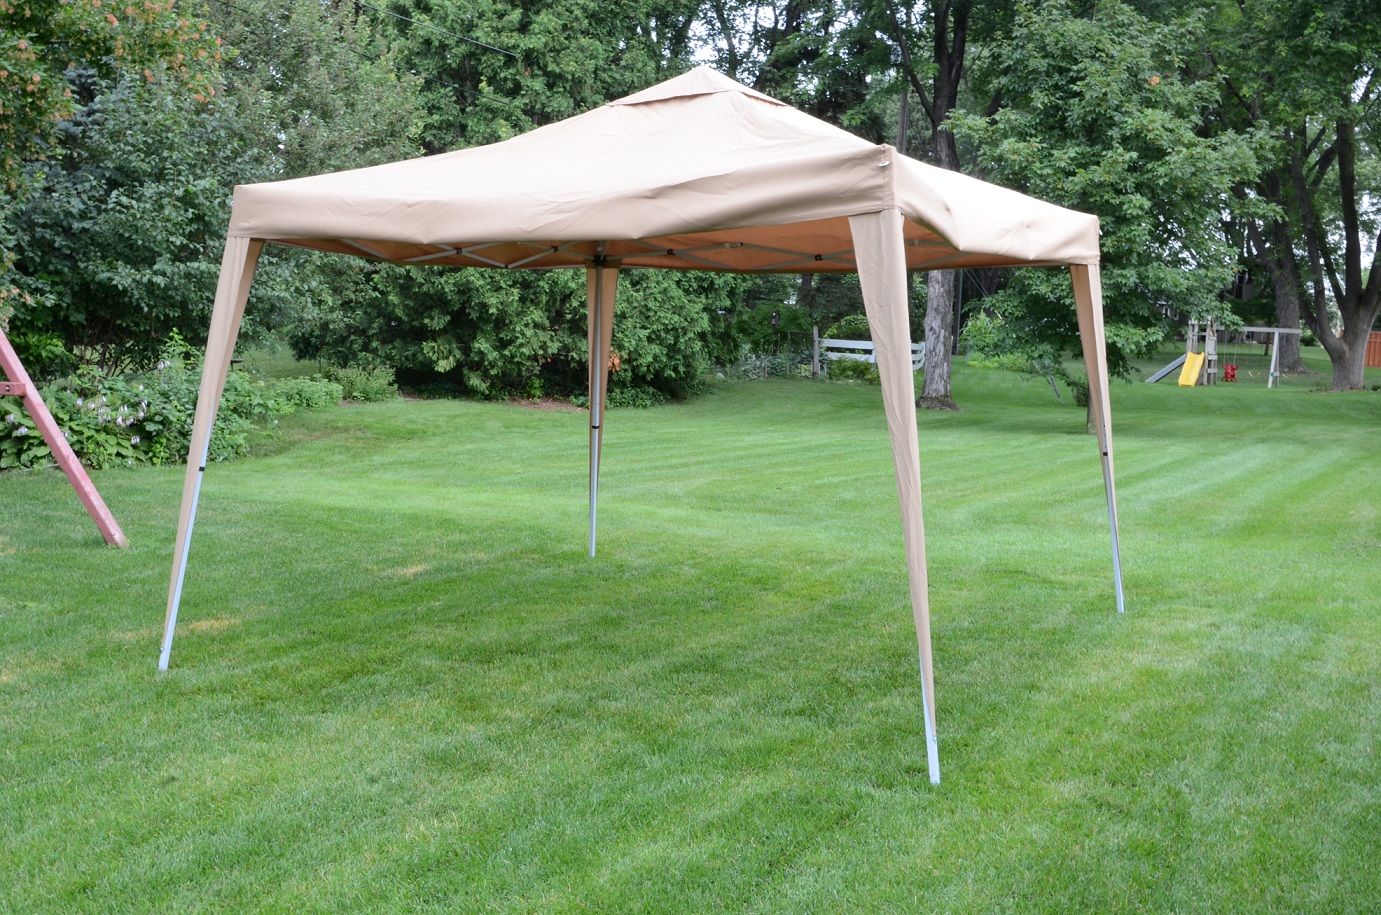 10 39 X10 39 Deluxe Gazebo Canopy With Net Outdoor Party Tent